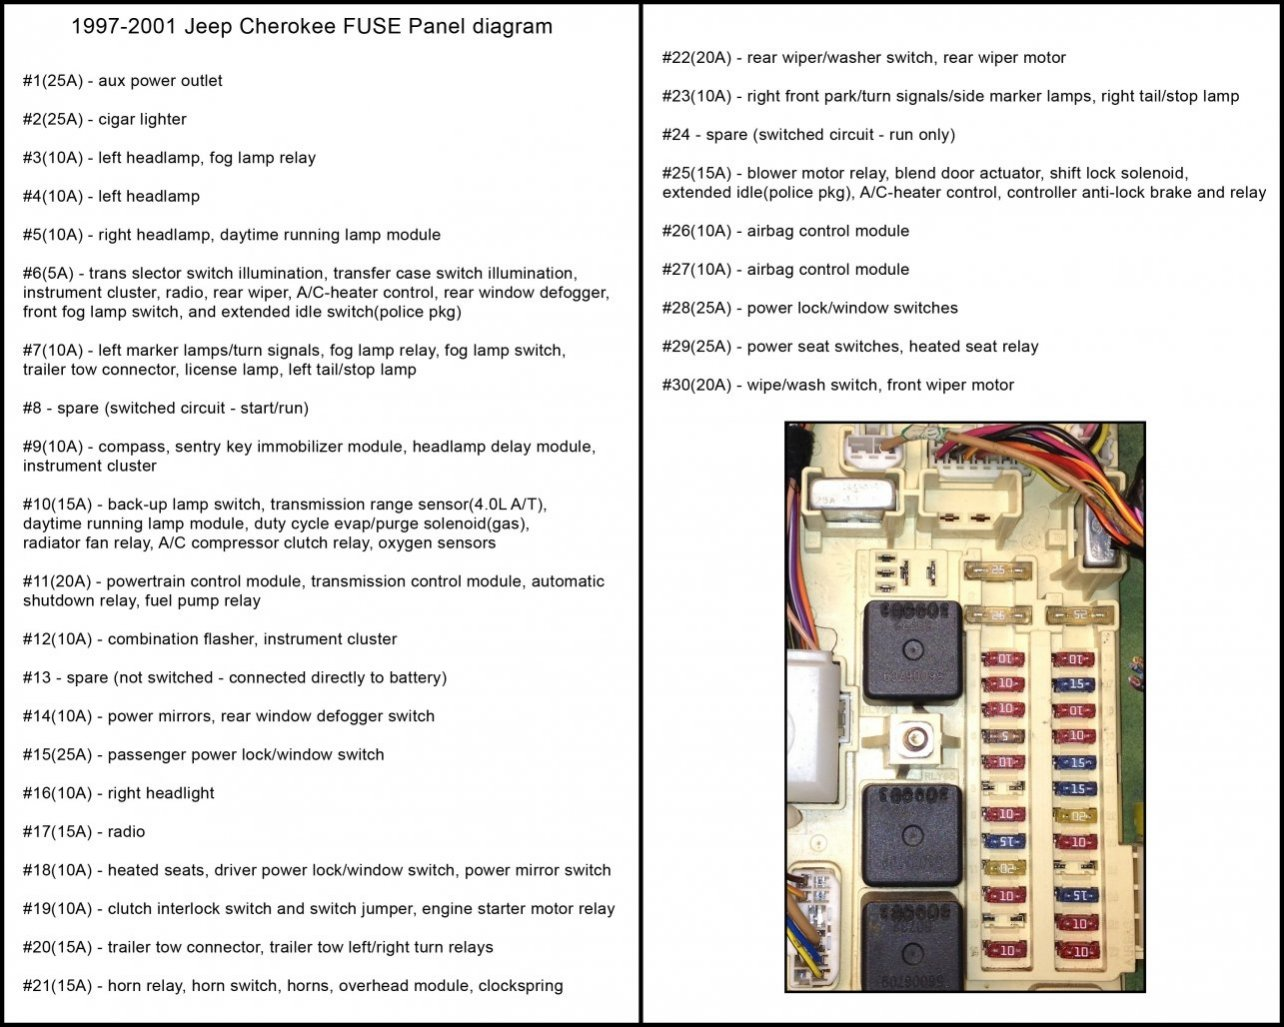 2001 Jeep Cherokee Classic Fuse Diagram Anyone?